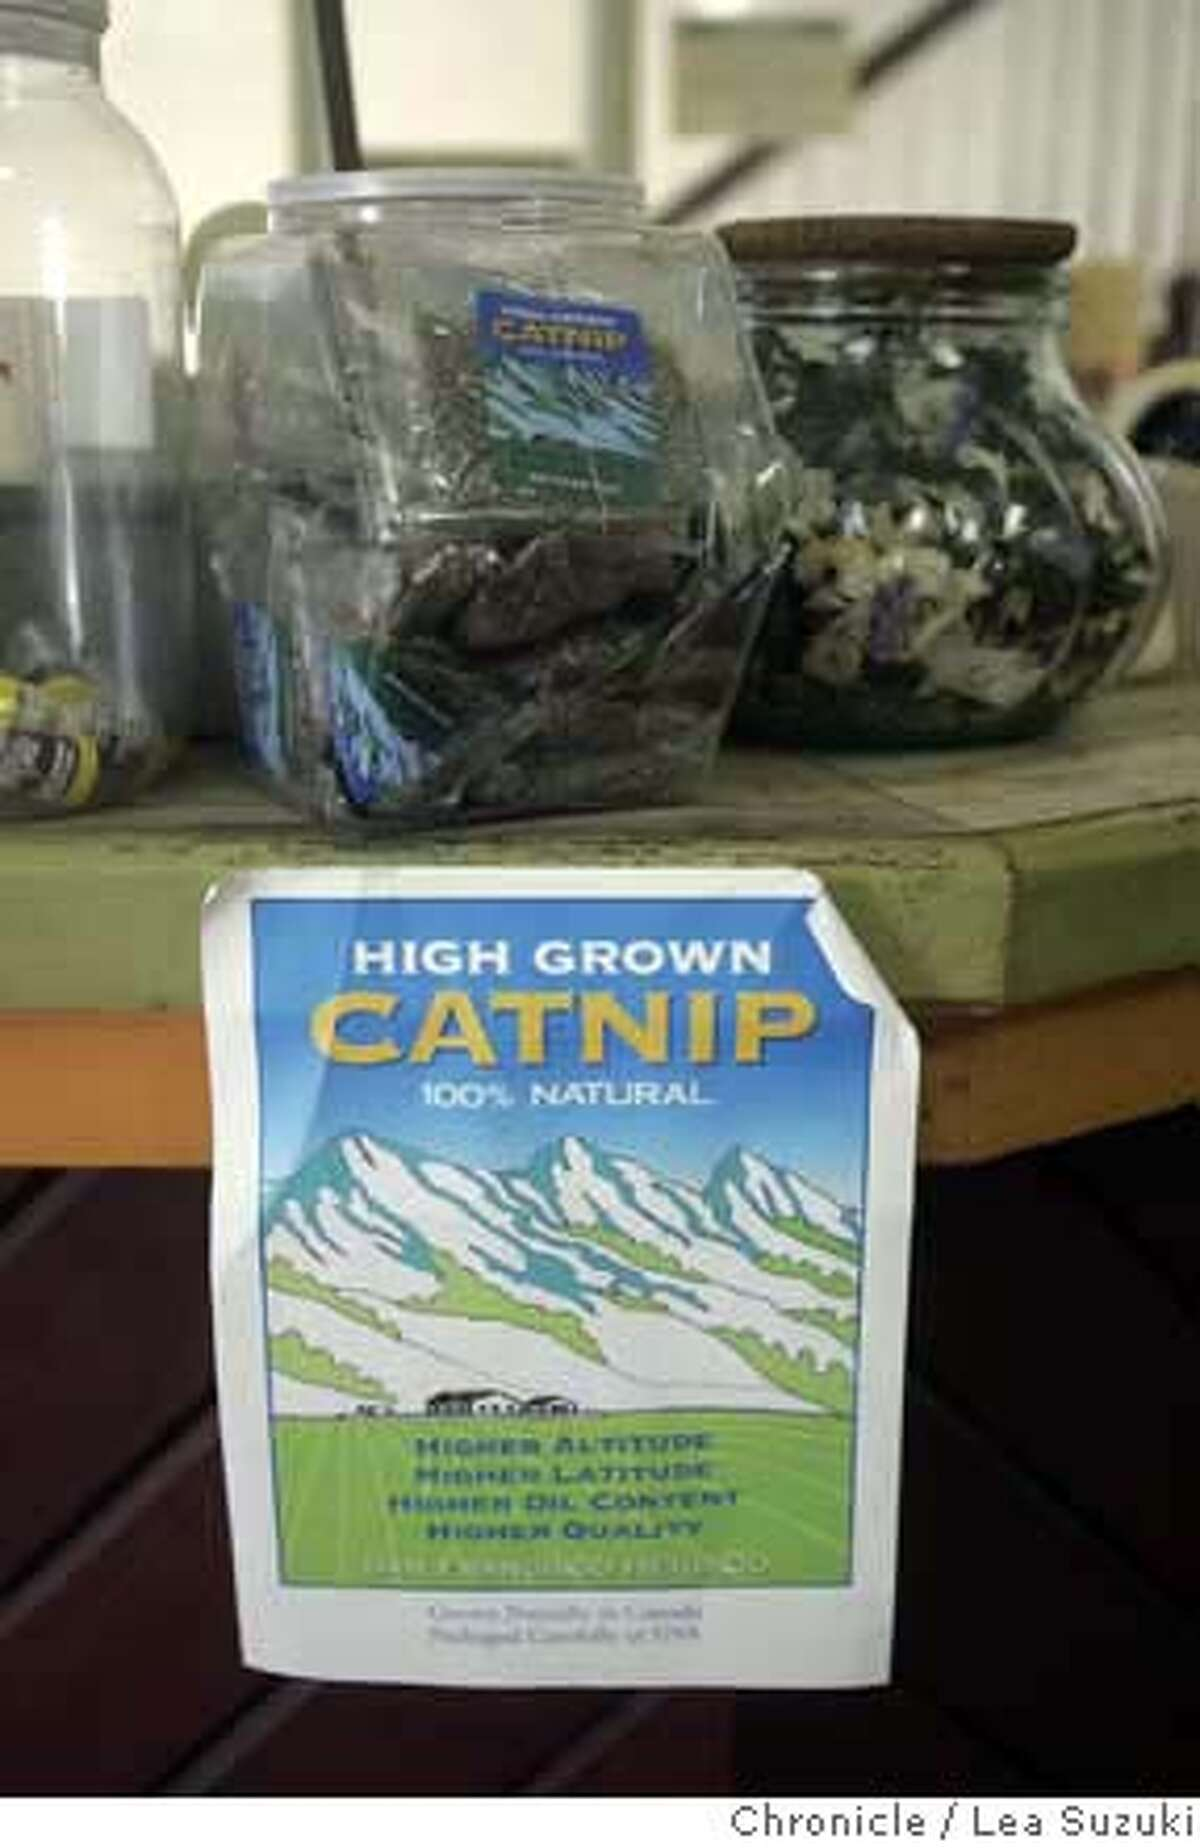 catnip13_026ls.JPG Cat nip display at the counter of the San Francisco Herb Co. Description:� As part of our tribute to Bay Area cat culture in the Nov. 13 Pink section, we check in with one of San Francisco's biggest catnip dealers. Neil Hanscomb, owner of the San Francisco Herb Co.has beening running the special